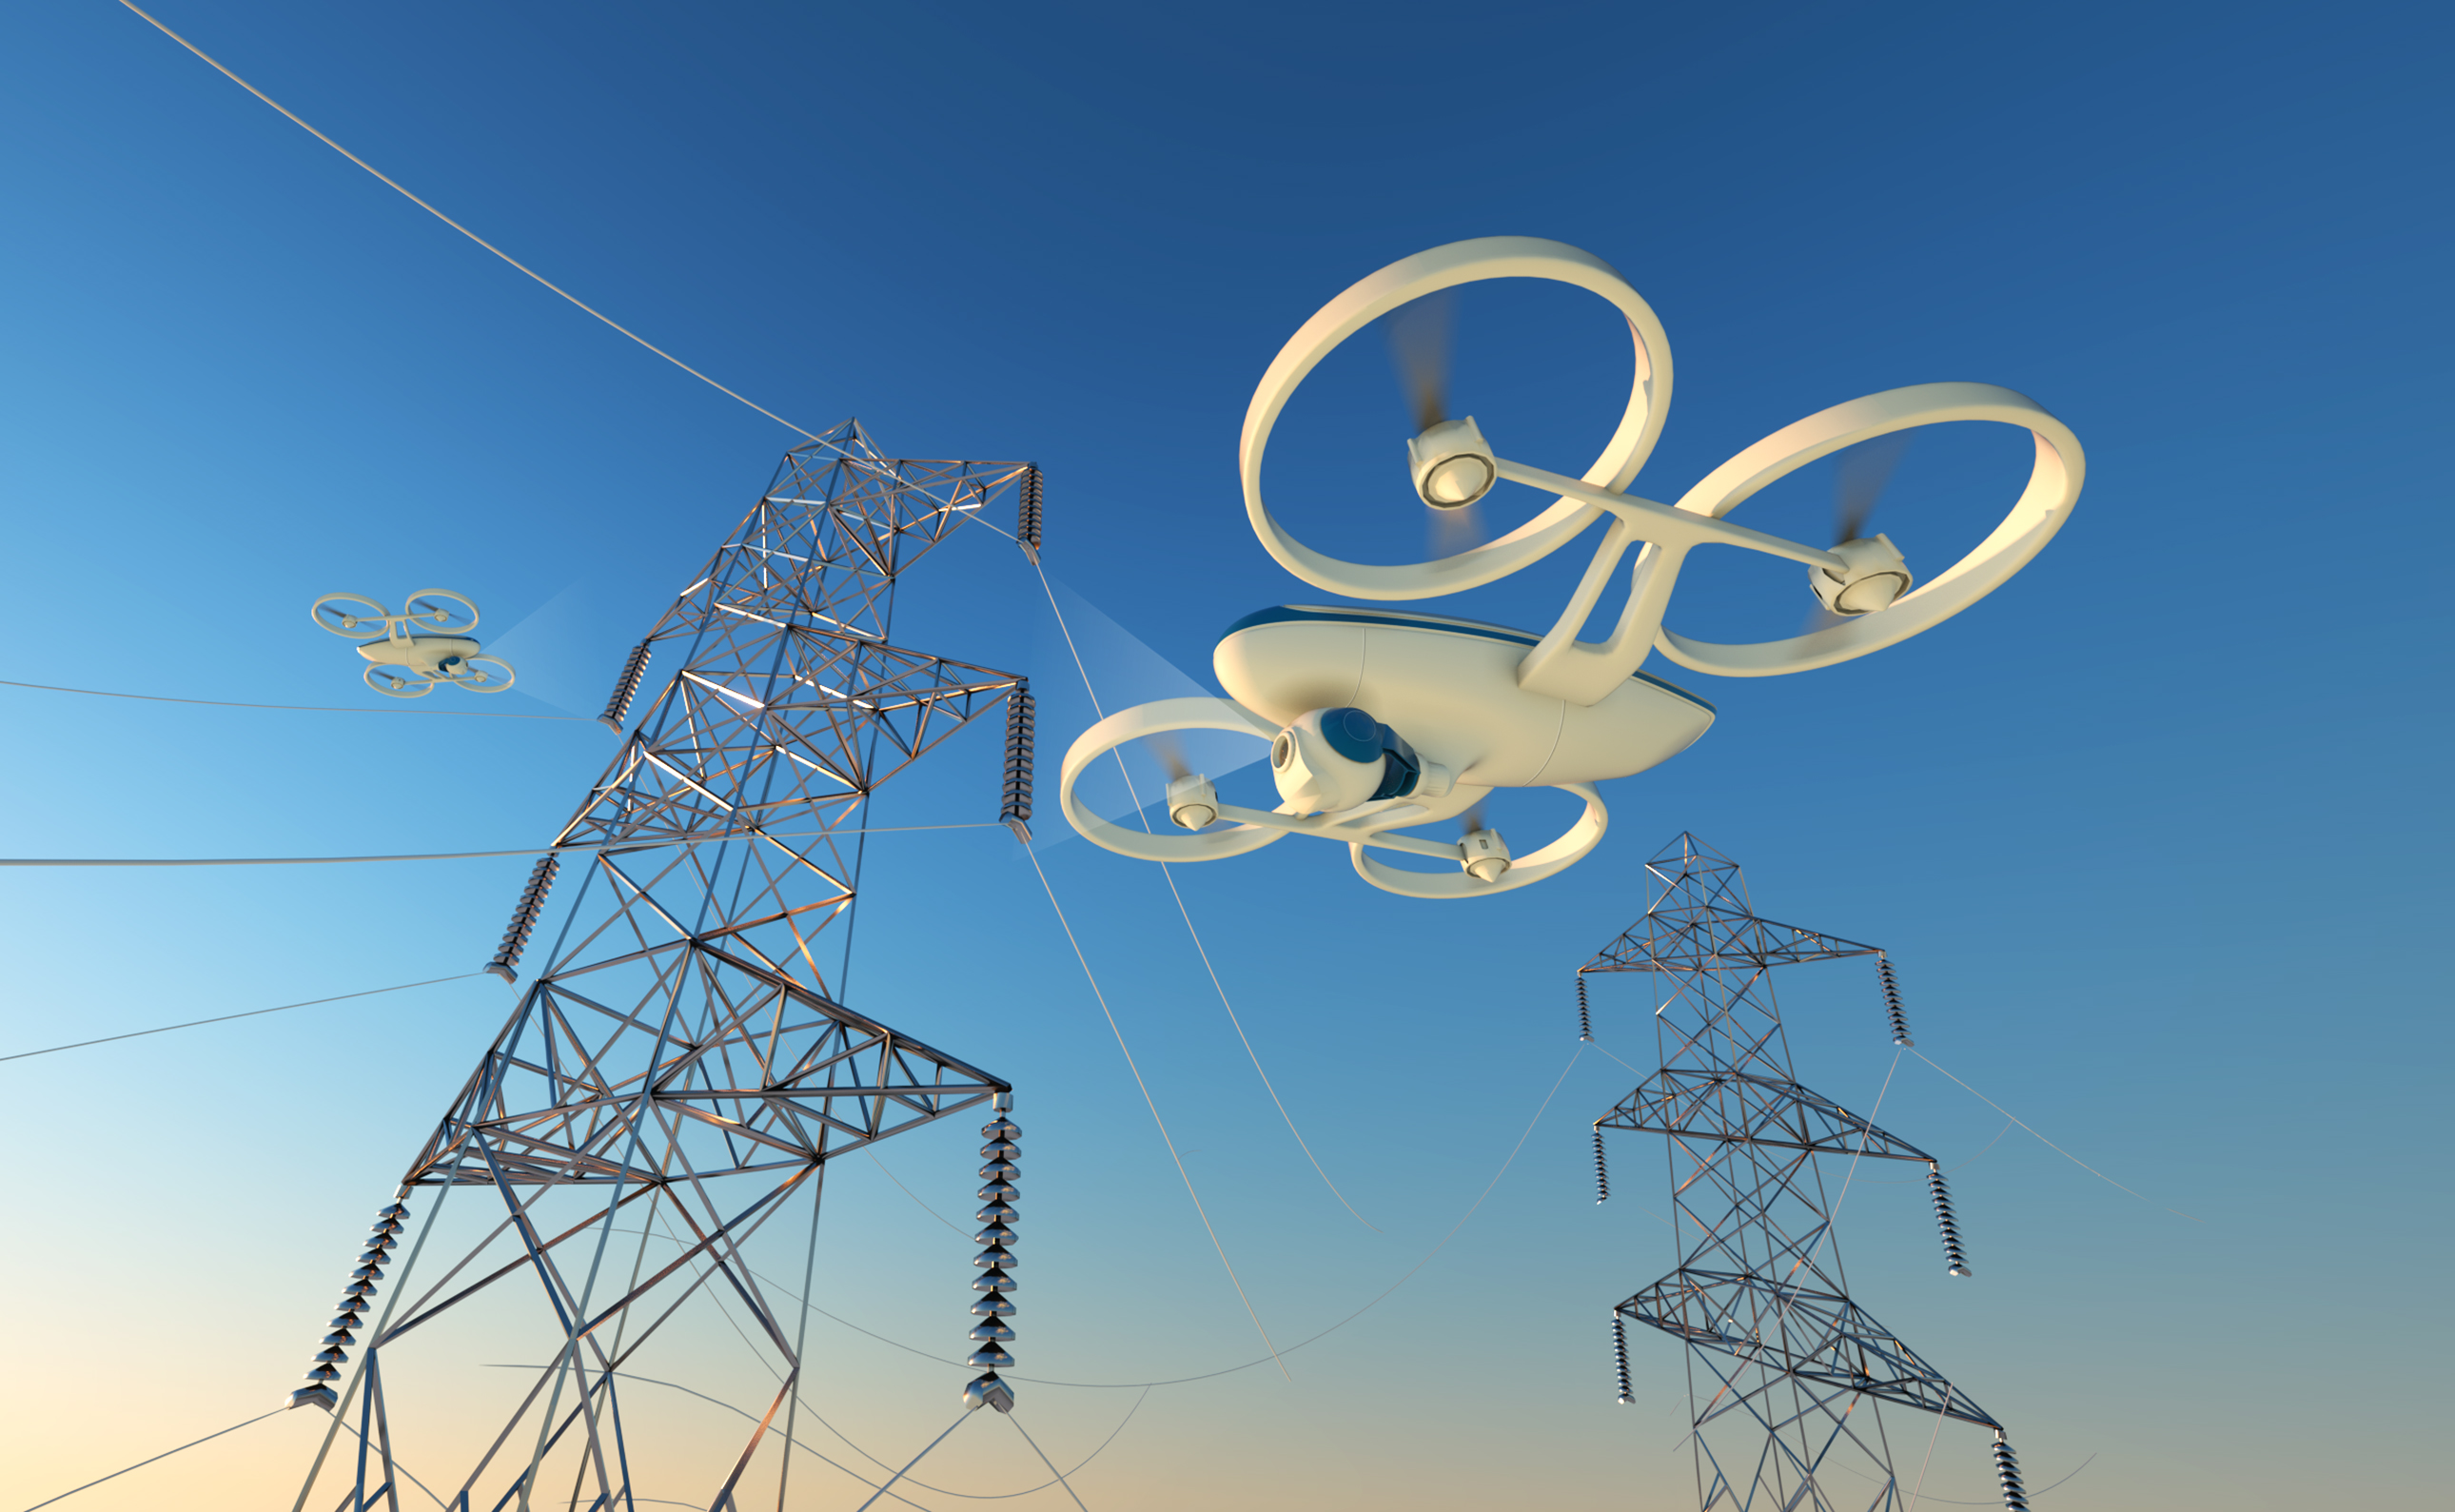 GE is using drones to inspect the power grid